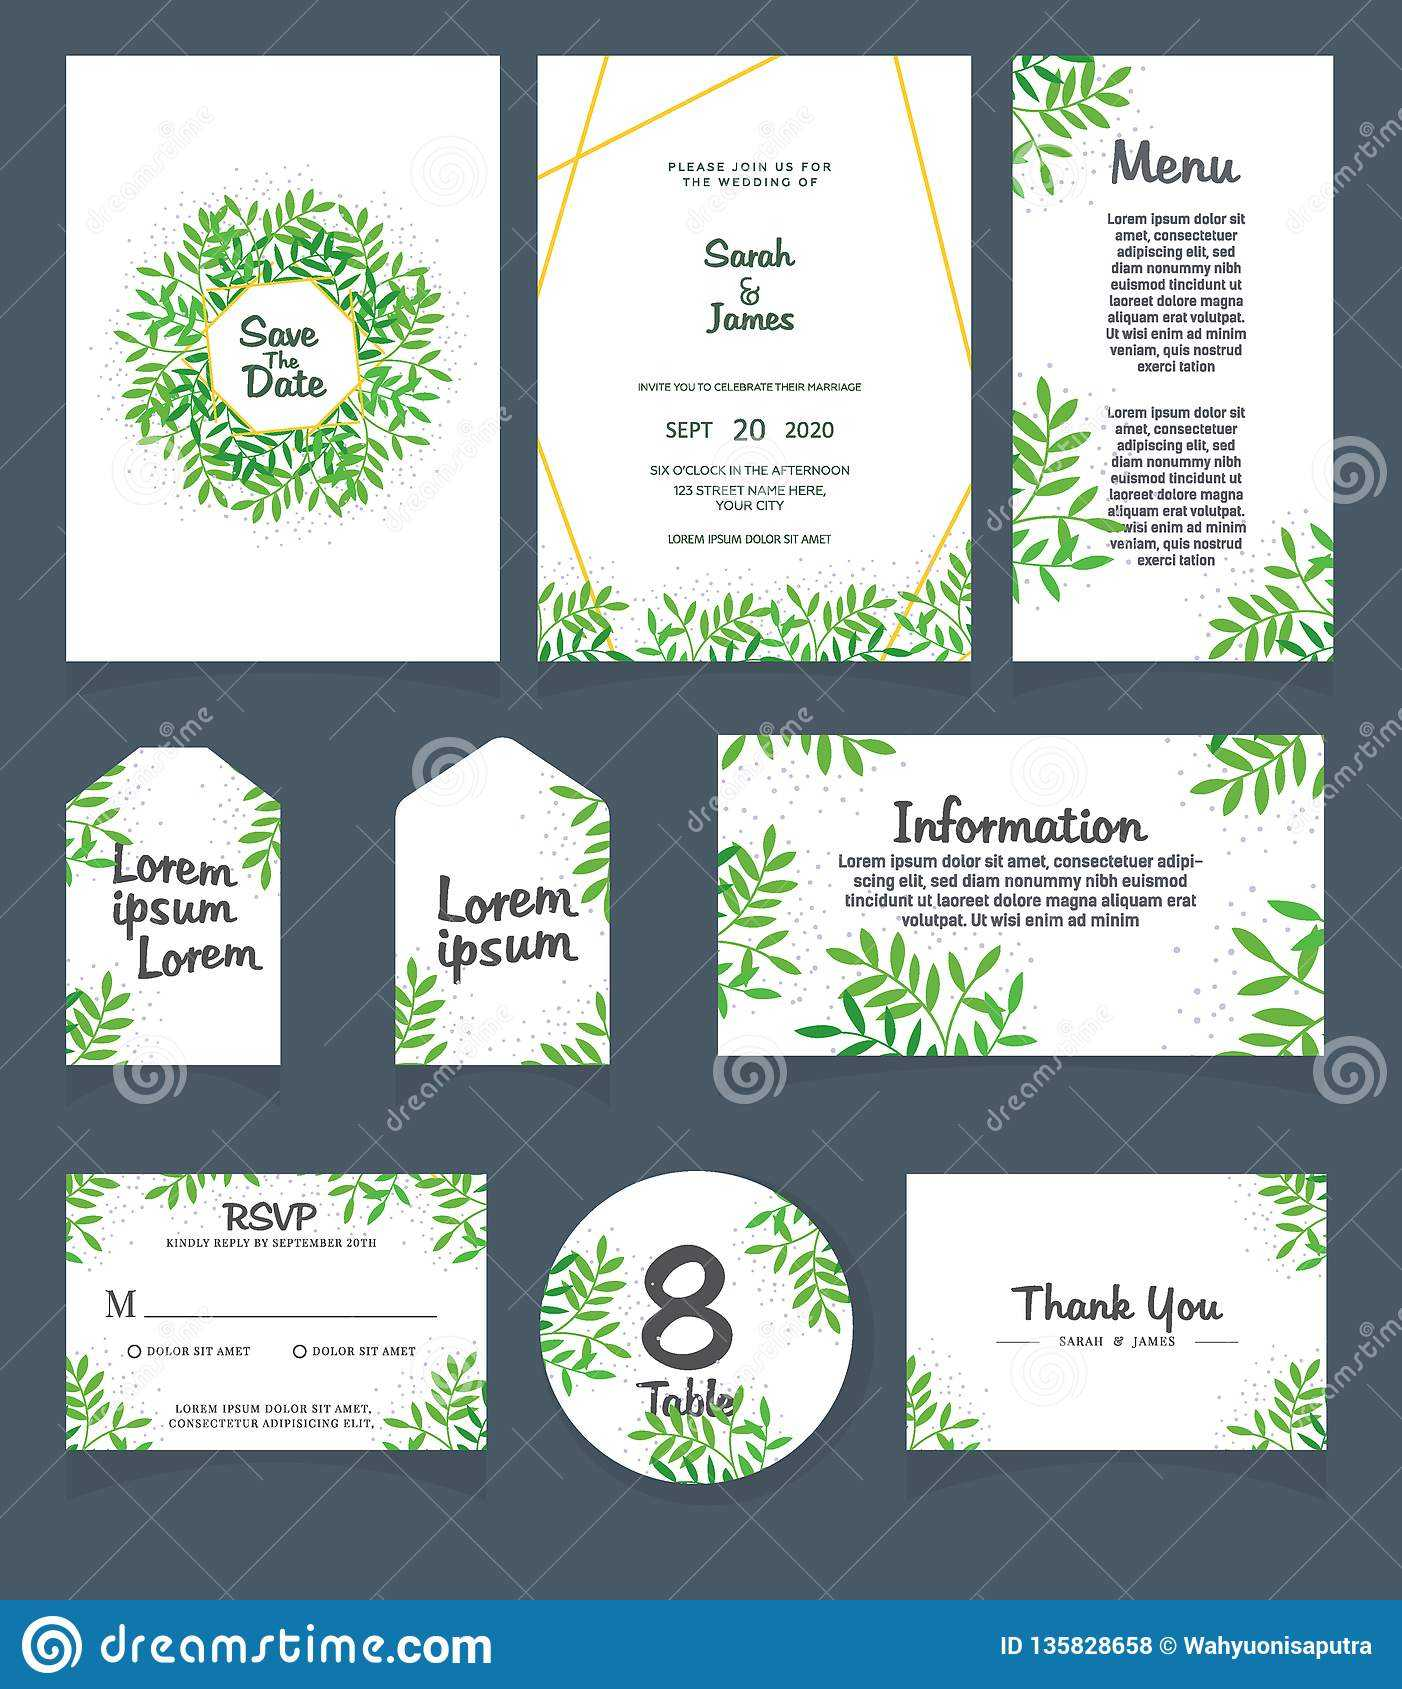 Wedding Invitation Card Template. Wedding Invitation, Thank Inside Table Place Card Template Free Download